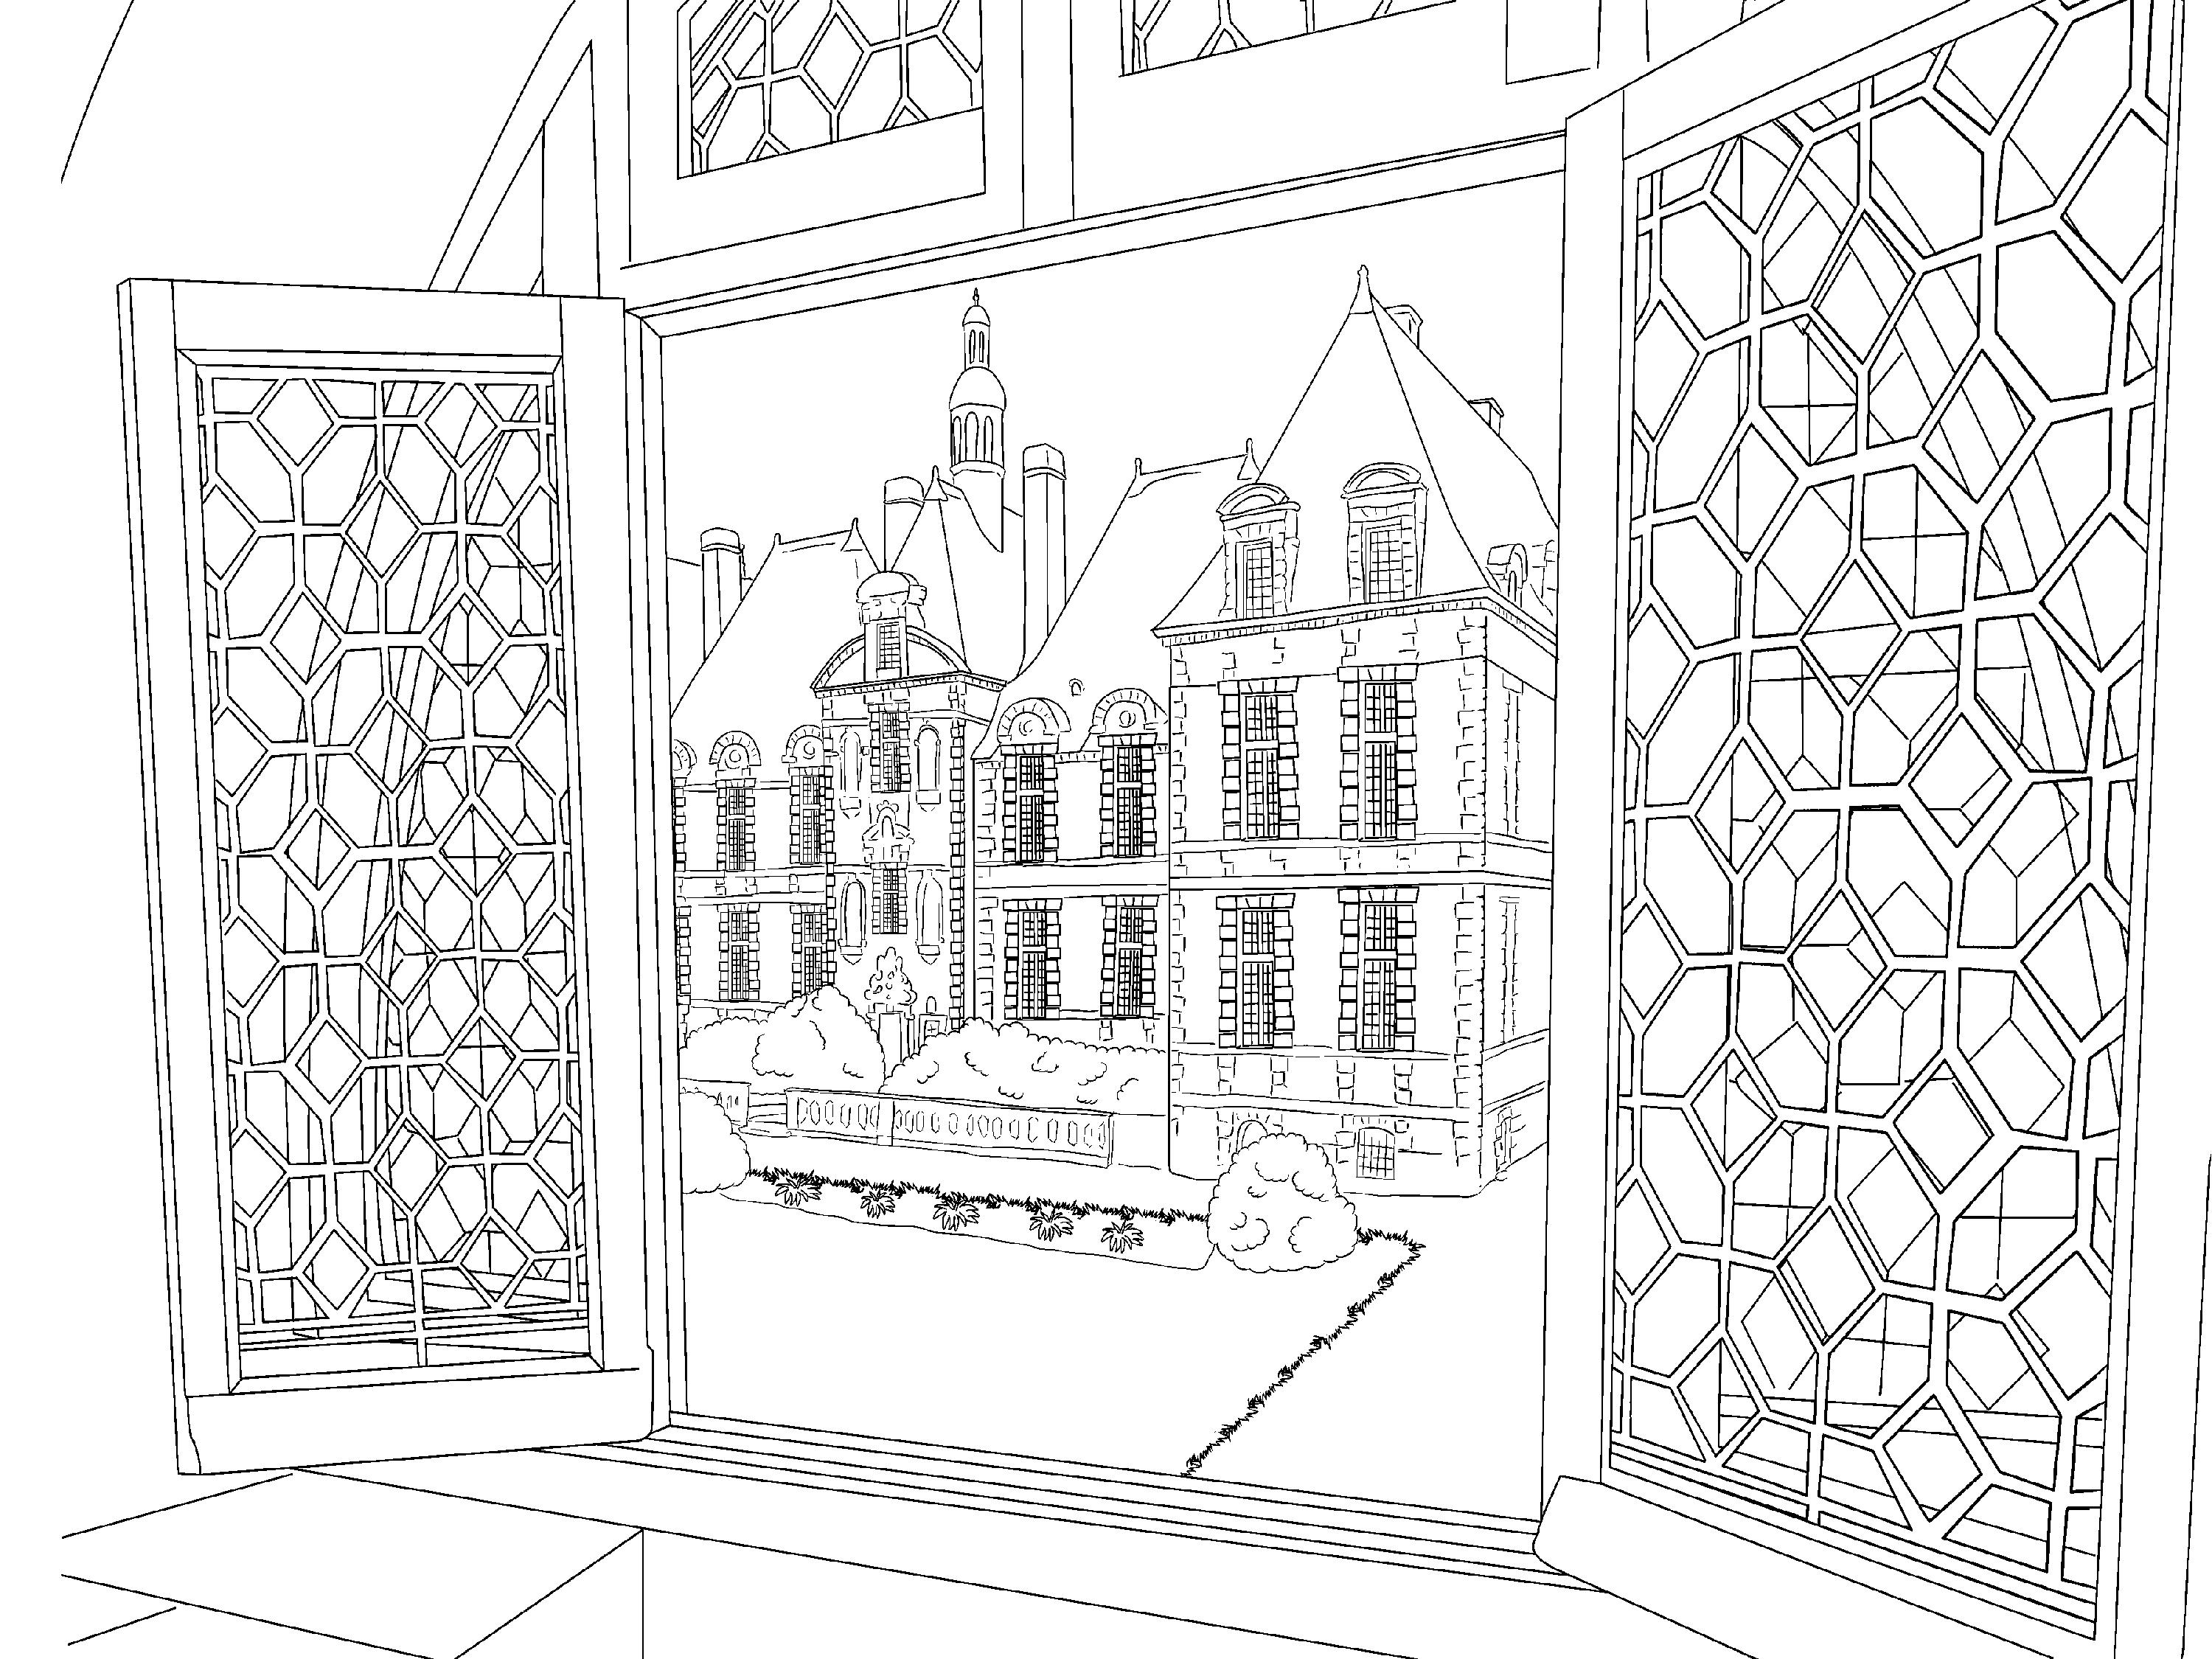 Beautiful Scenery Colouring Pages In The Playroom Scenery Coloring Pages